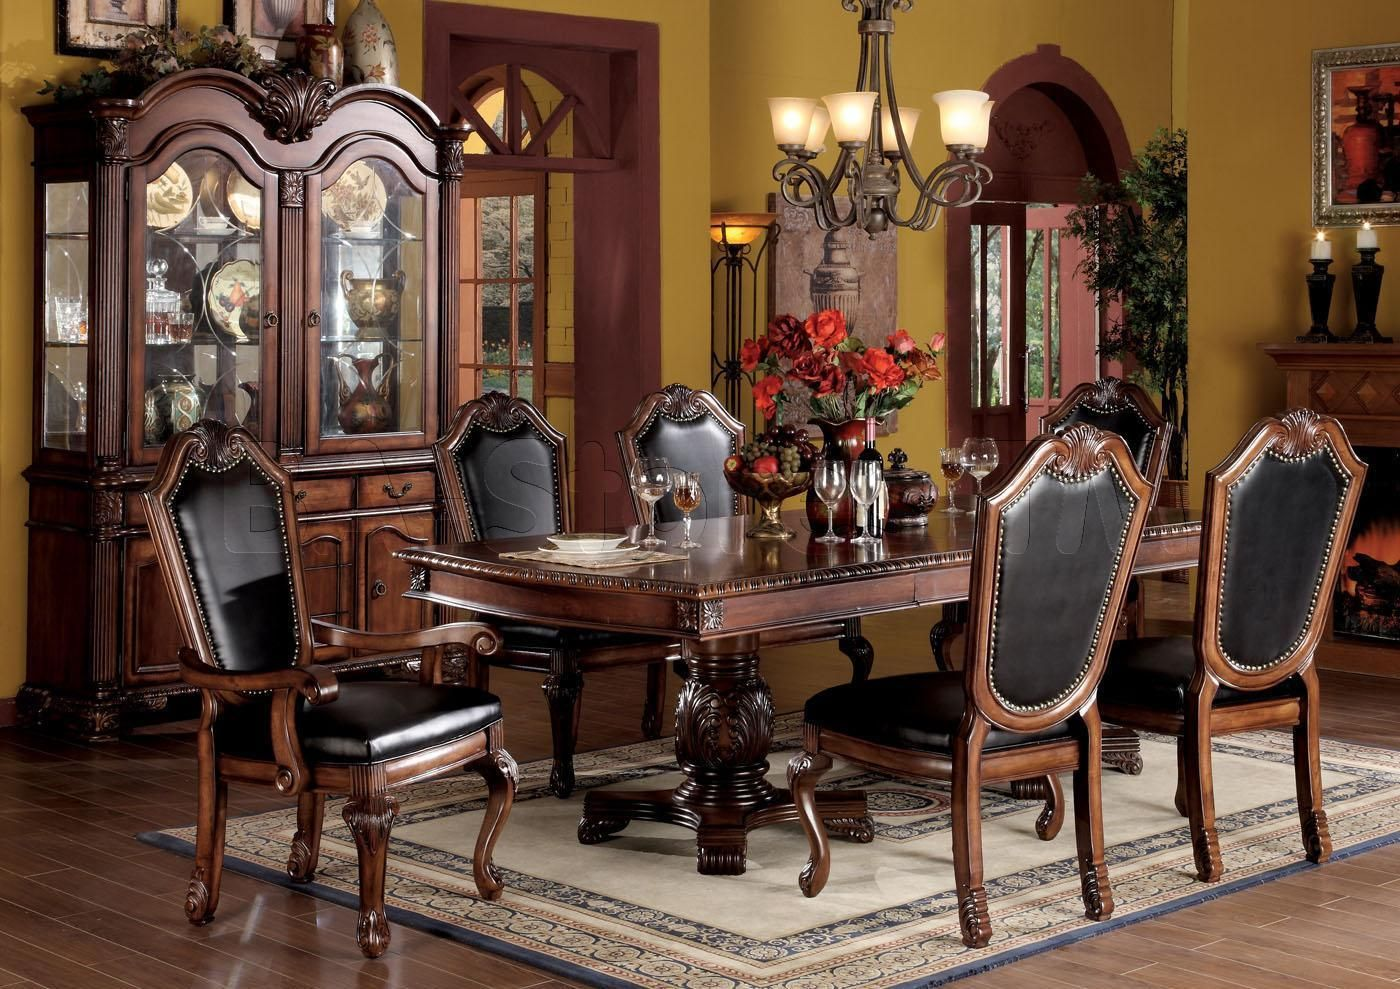 Winning Dining Room Furniture Sets Inspirations The Dining Room Gorgeous Traditional Dining Room Sets Cherry Decorating Inspiration